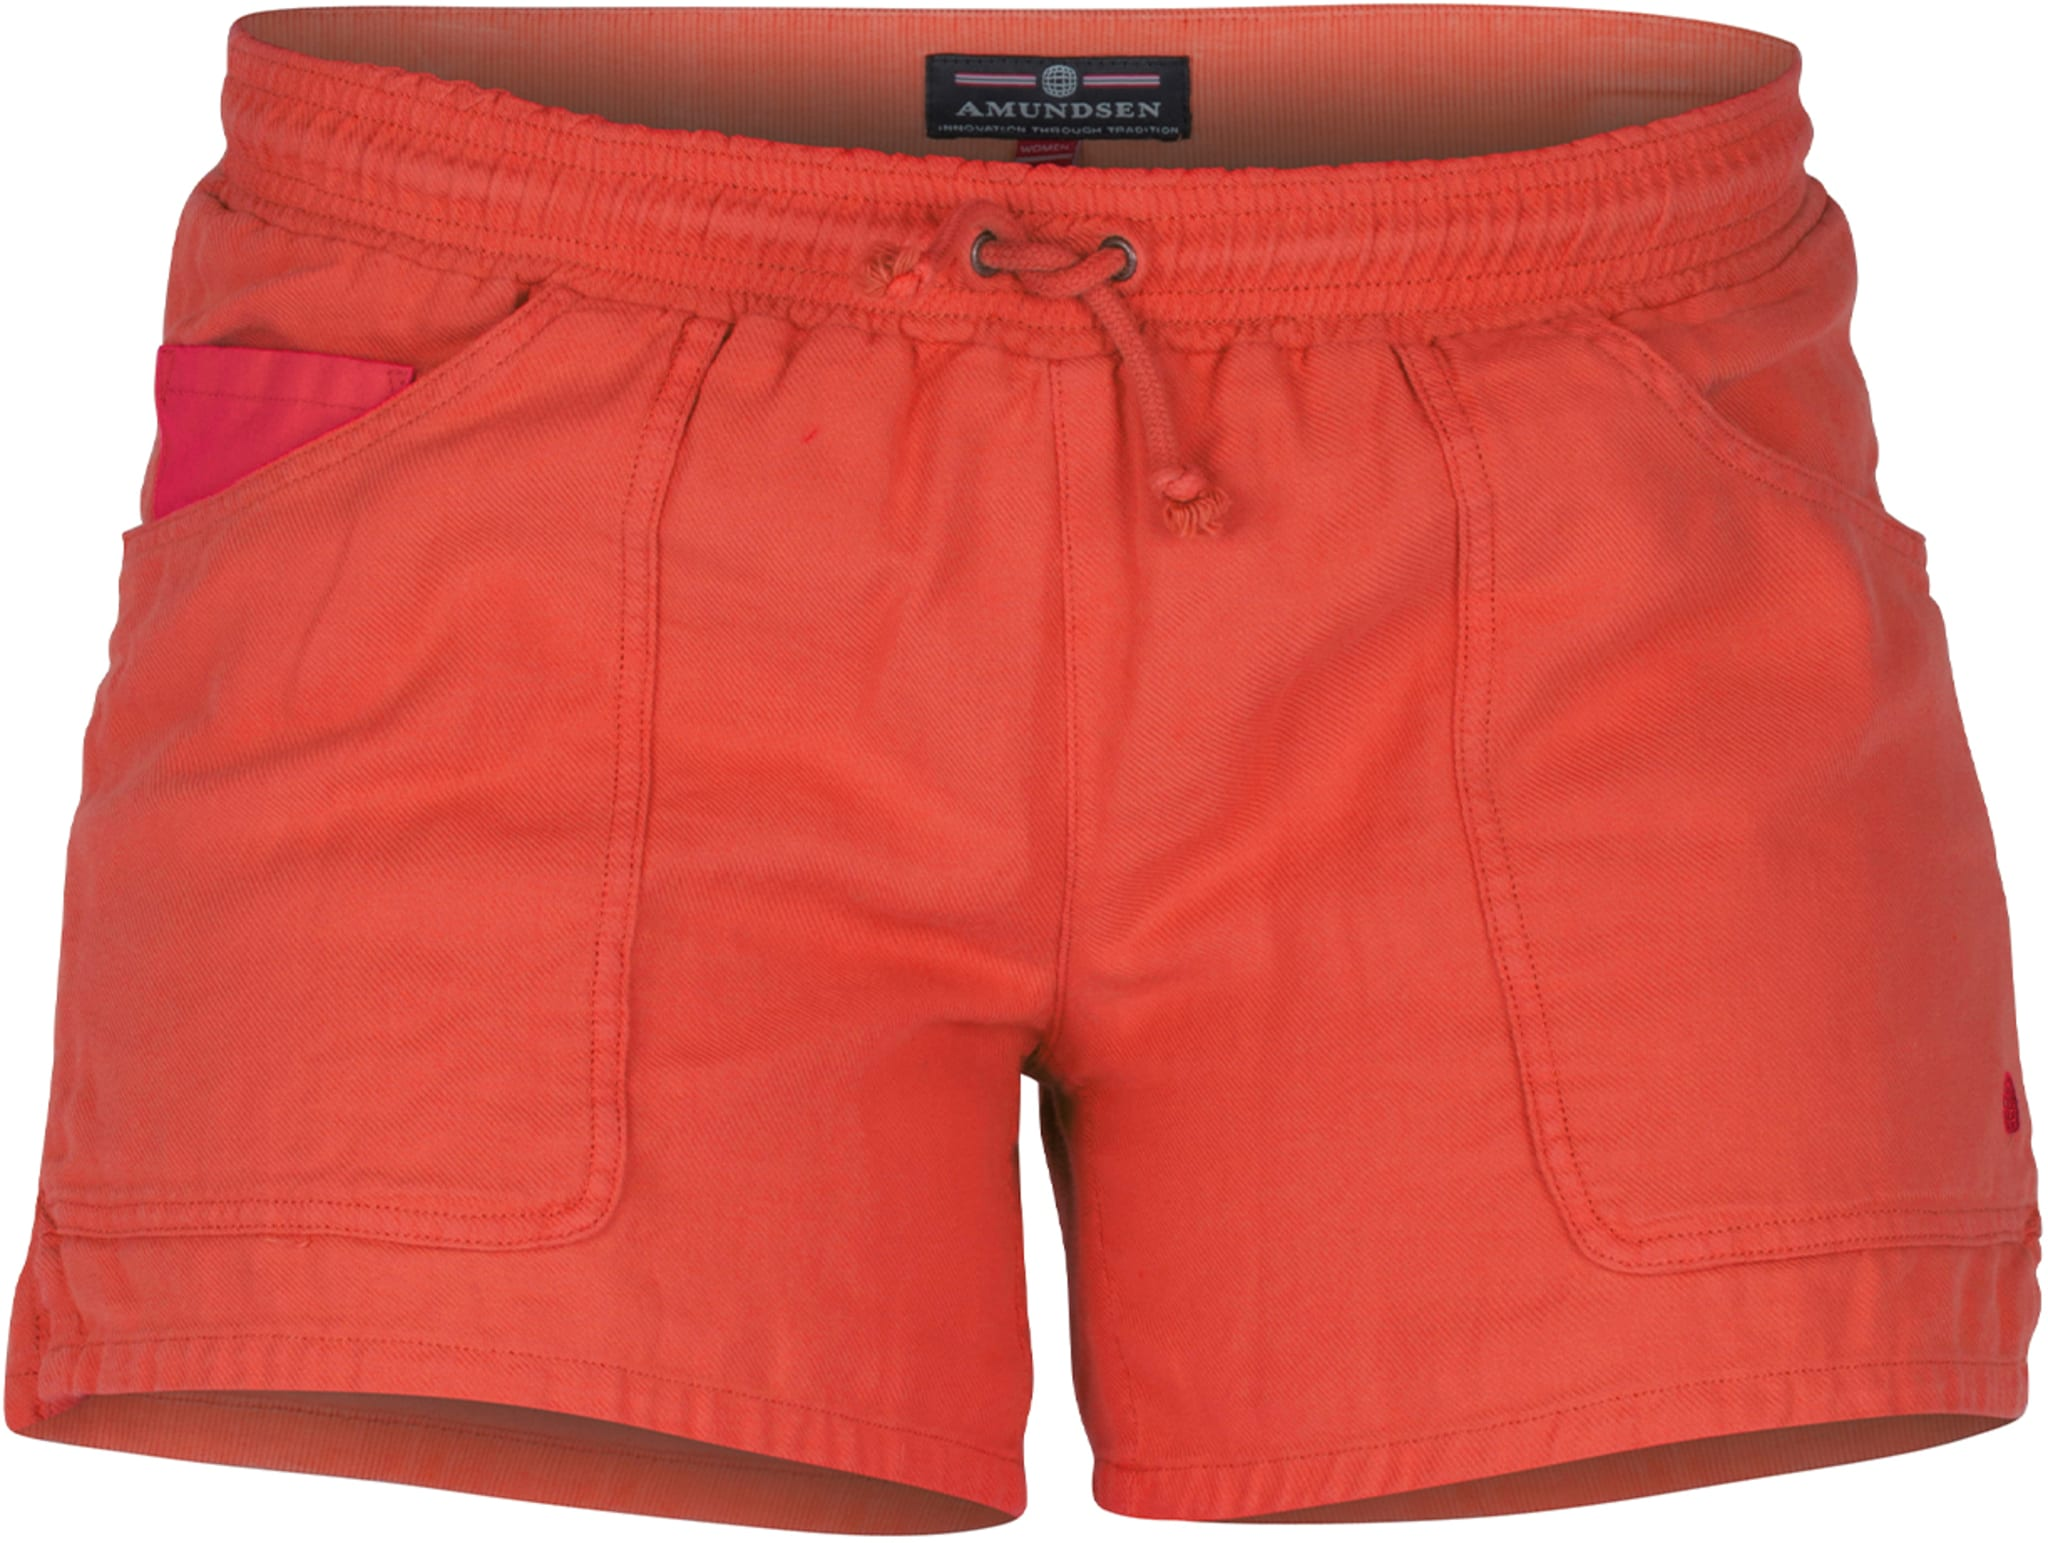 4incher Vagabond Shorts Garment Dyed Womens